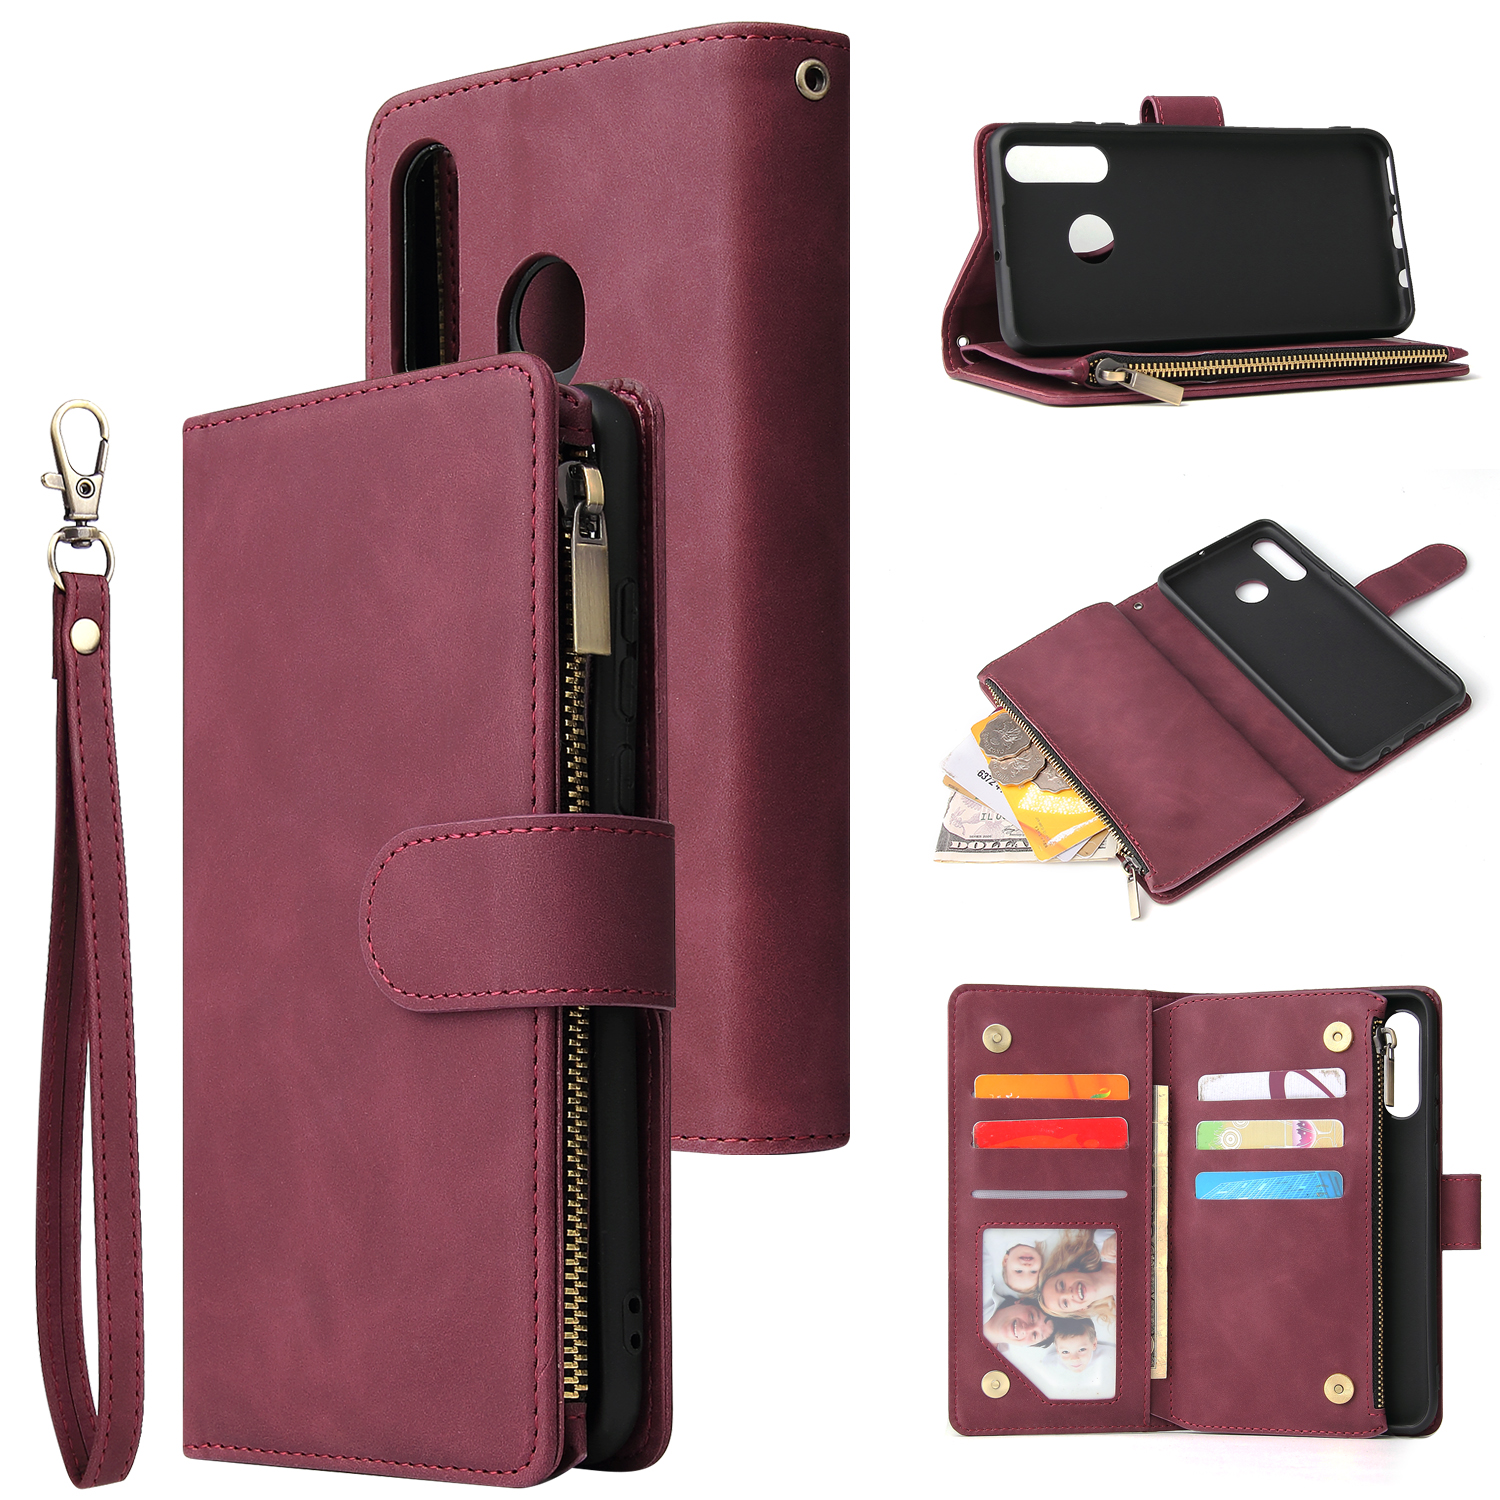 For HUAWEI P30 HUAWEI P30 lite HUAWEI P30 pro Multi-card Bracket Coin Wallet Zipper Mobile Phone PU Leather Phone Case  5 wine red